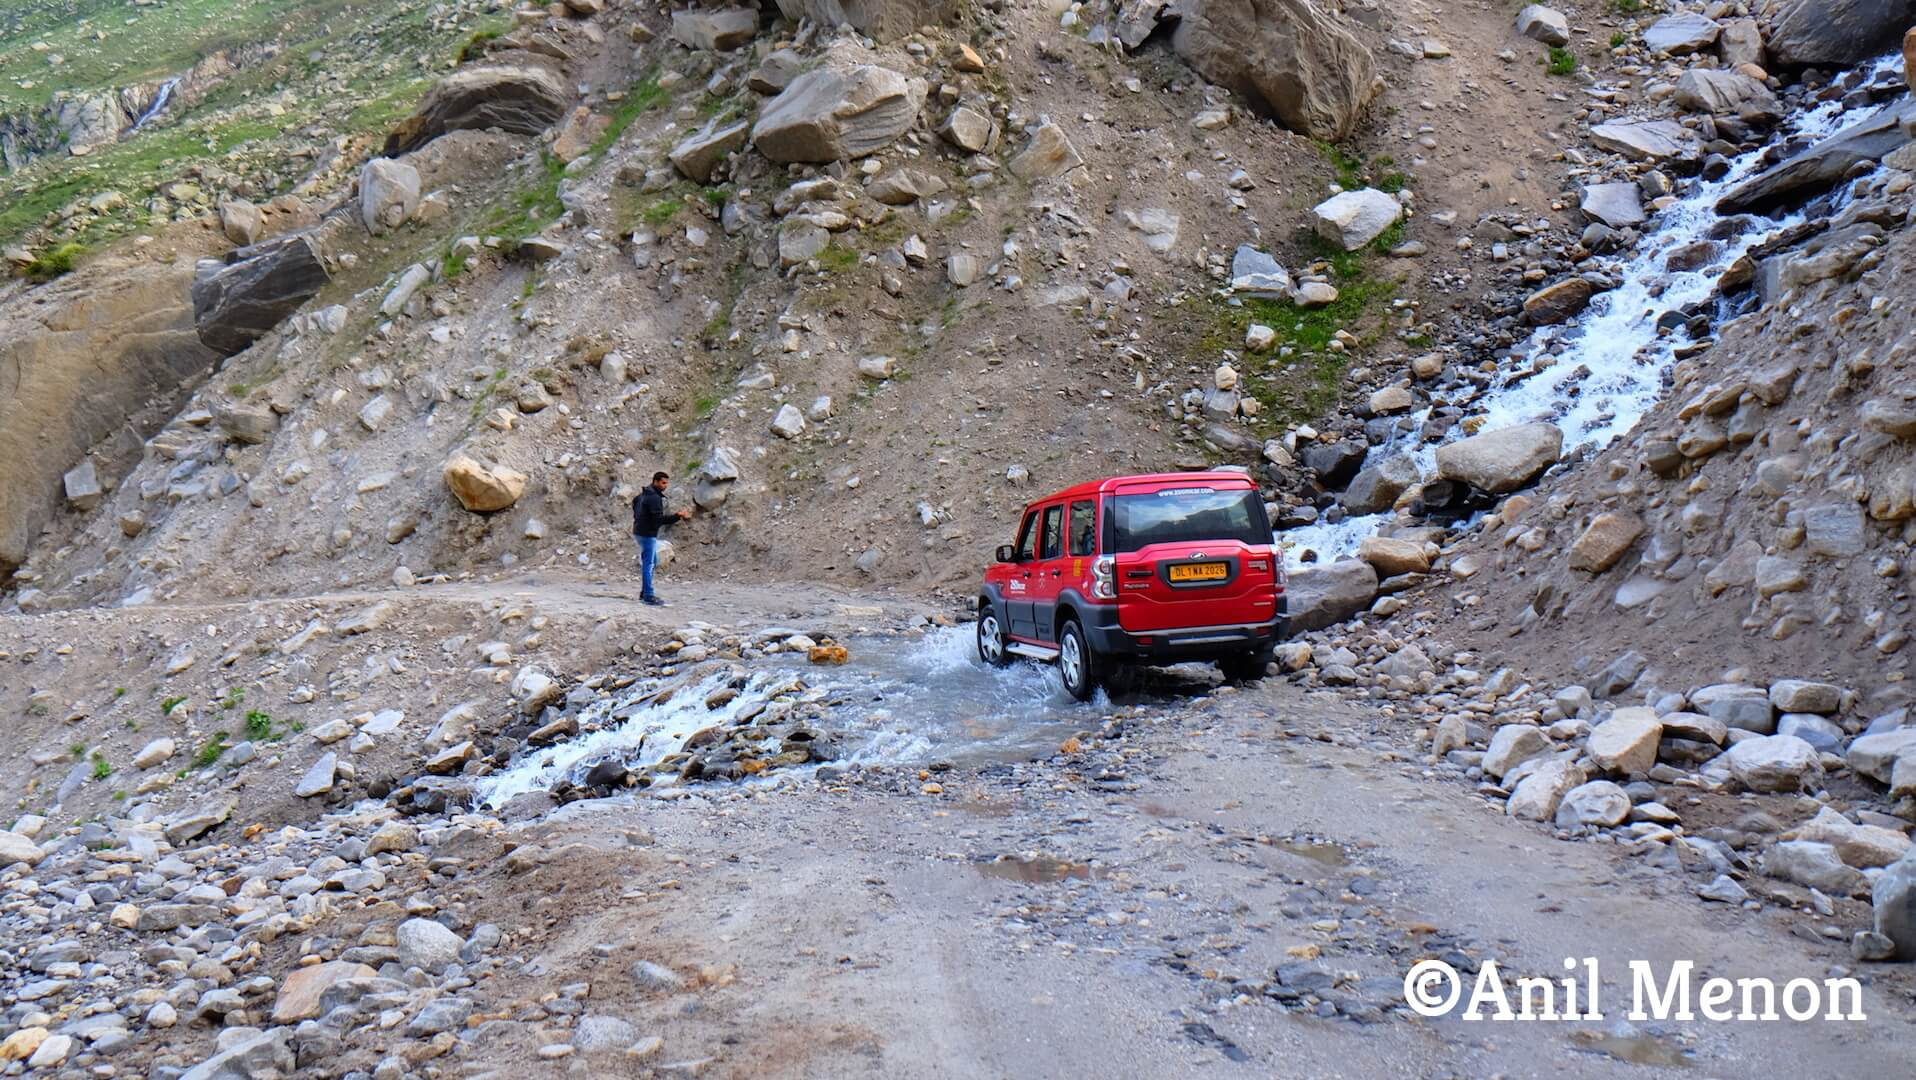 A red car navigating through a stream and bad roads